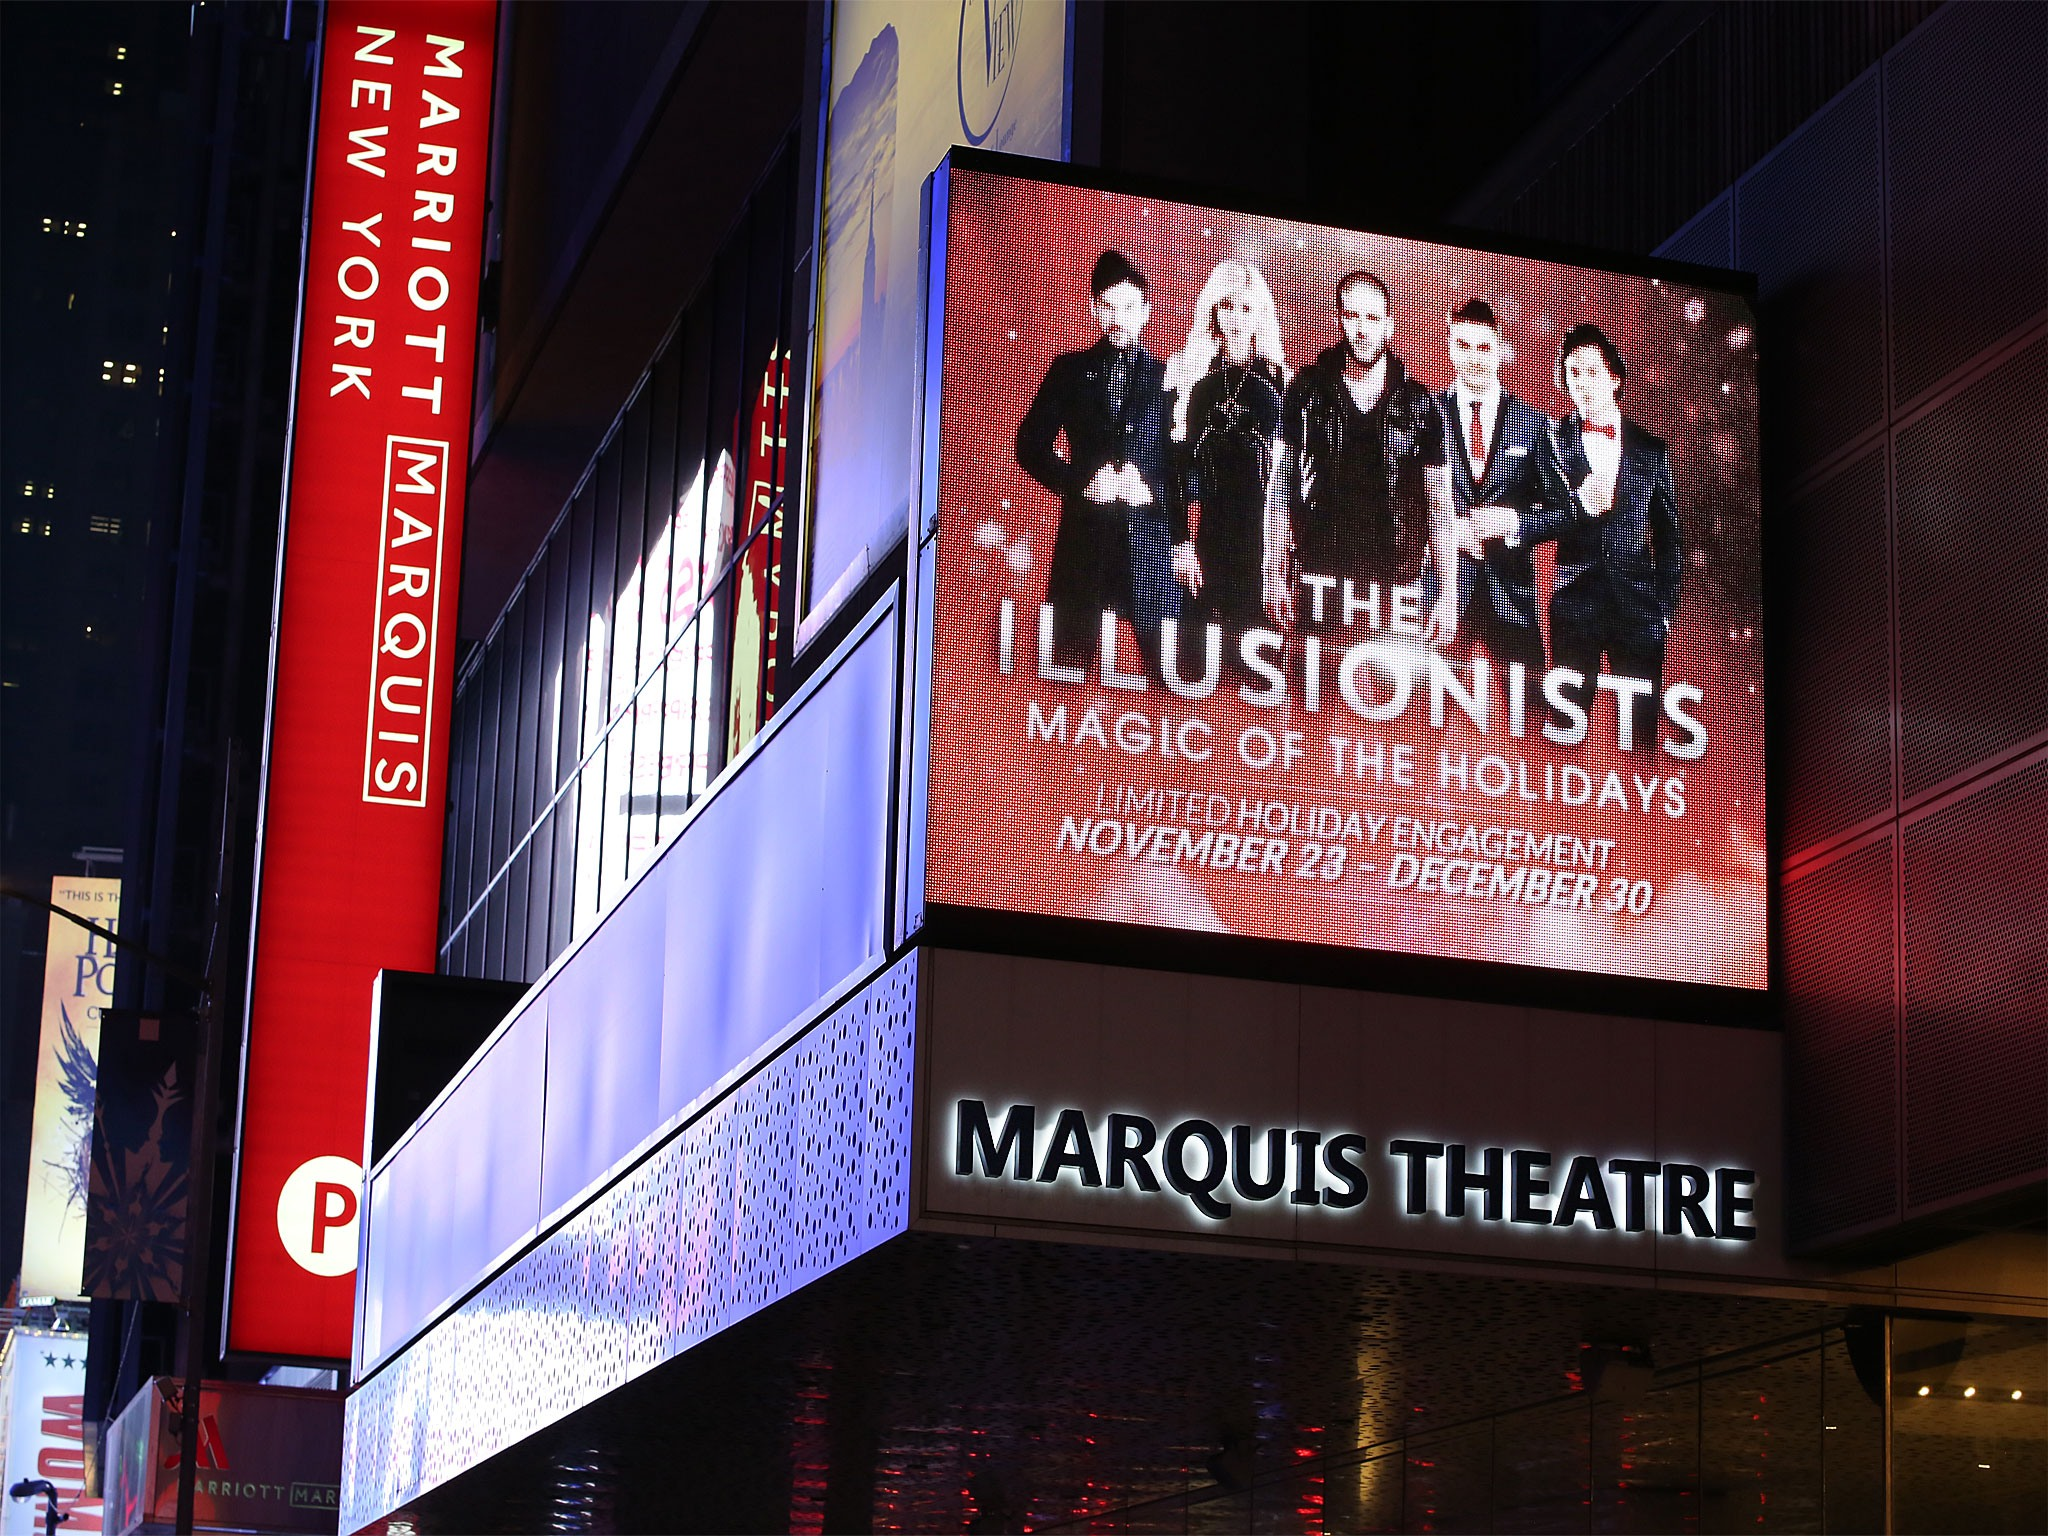 The Illusionists at the Marquis Theatre